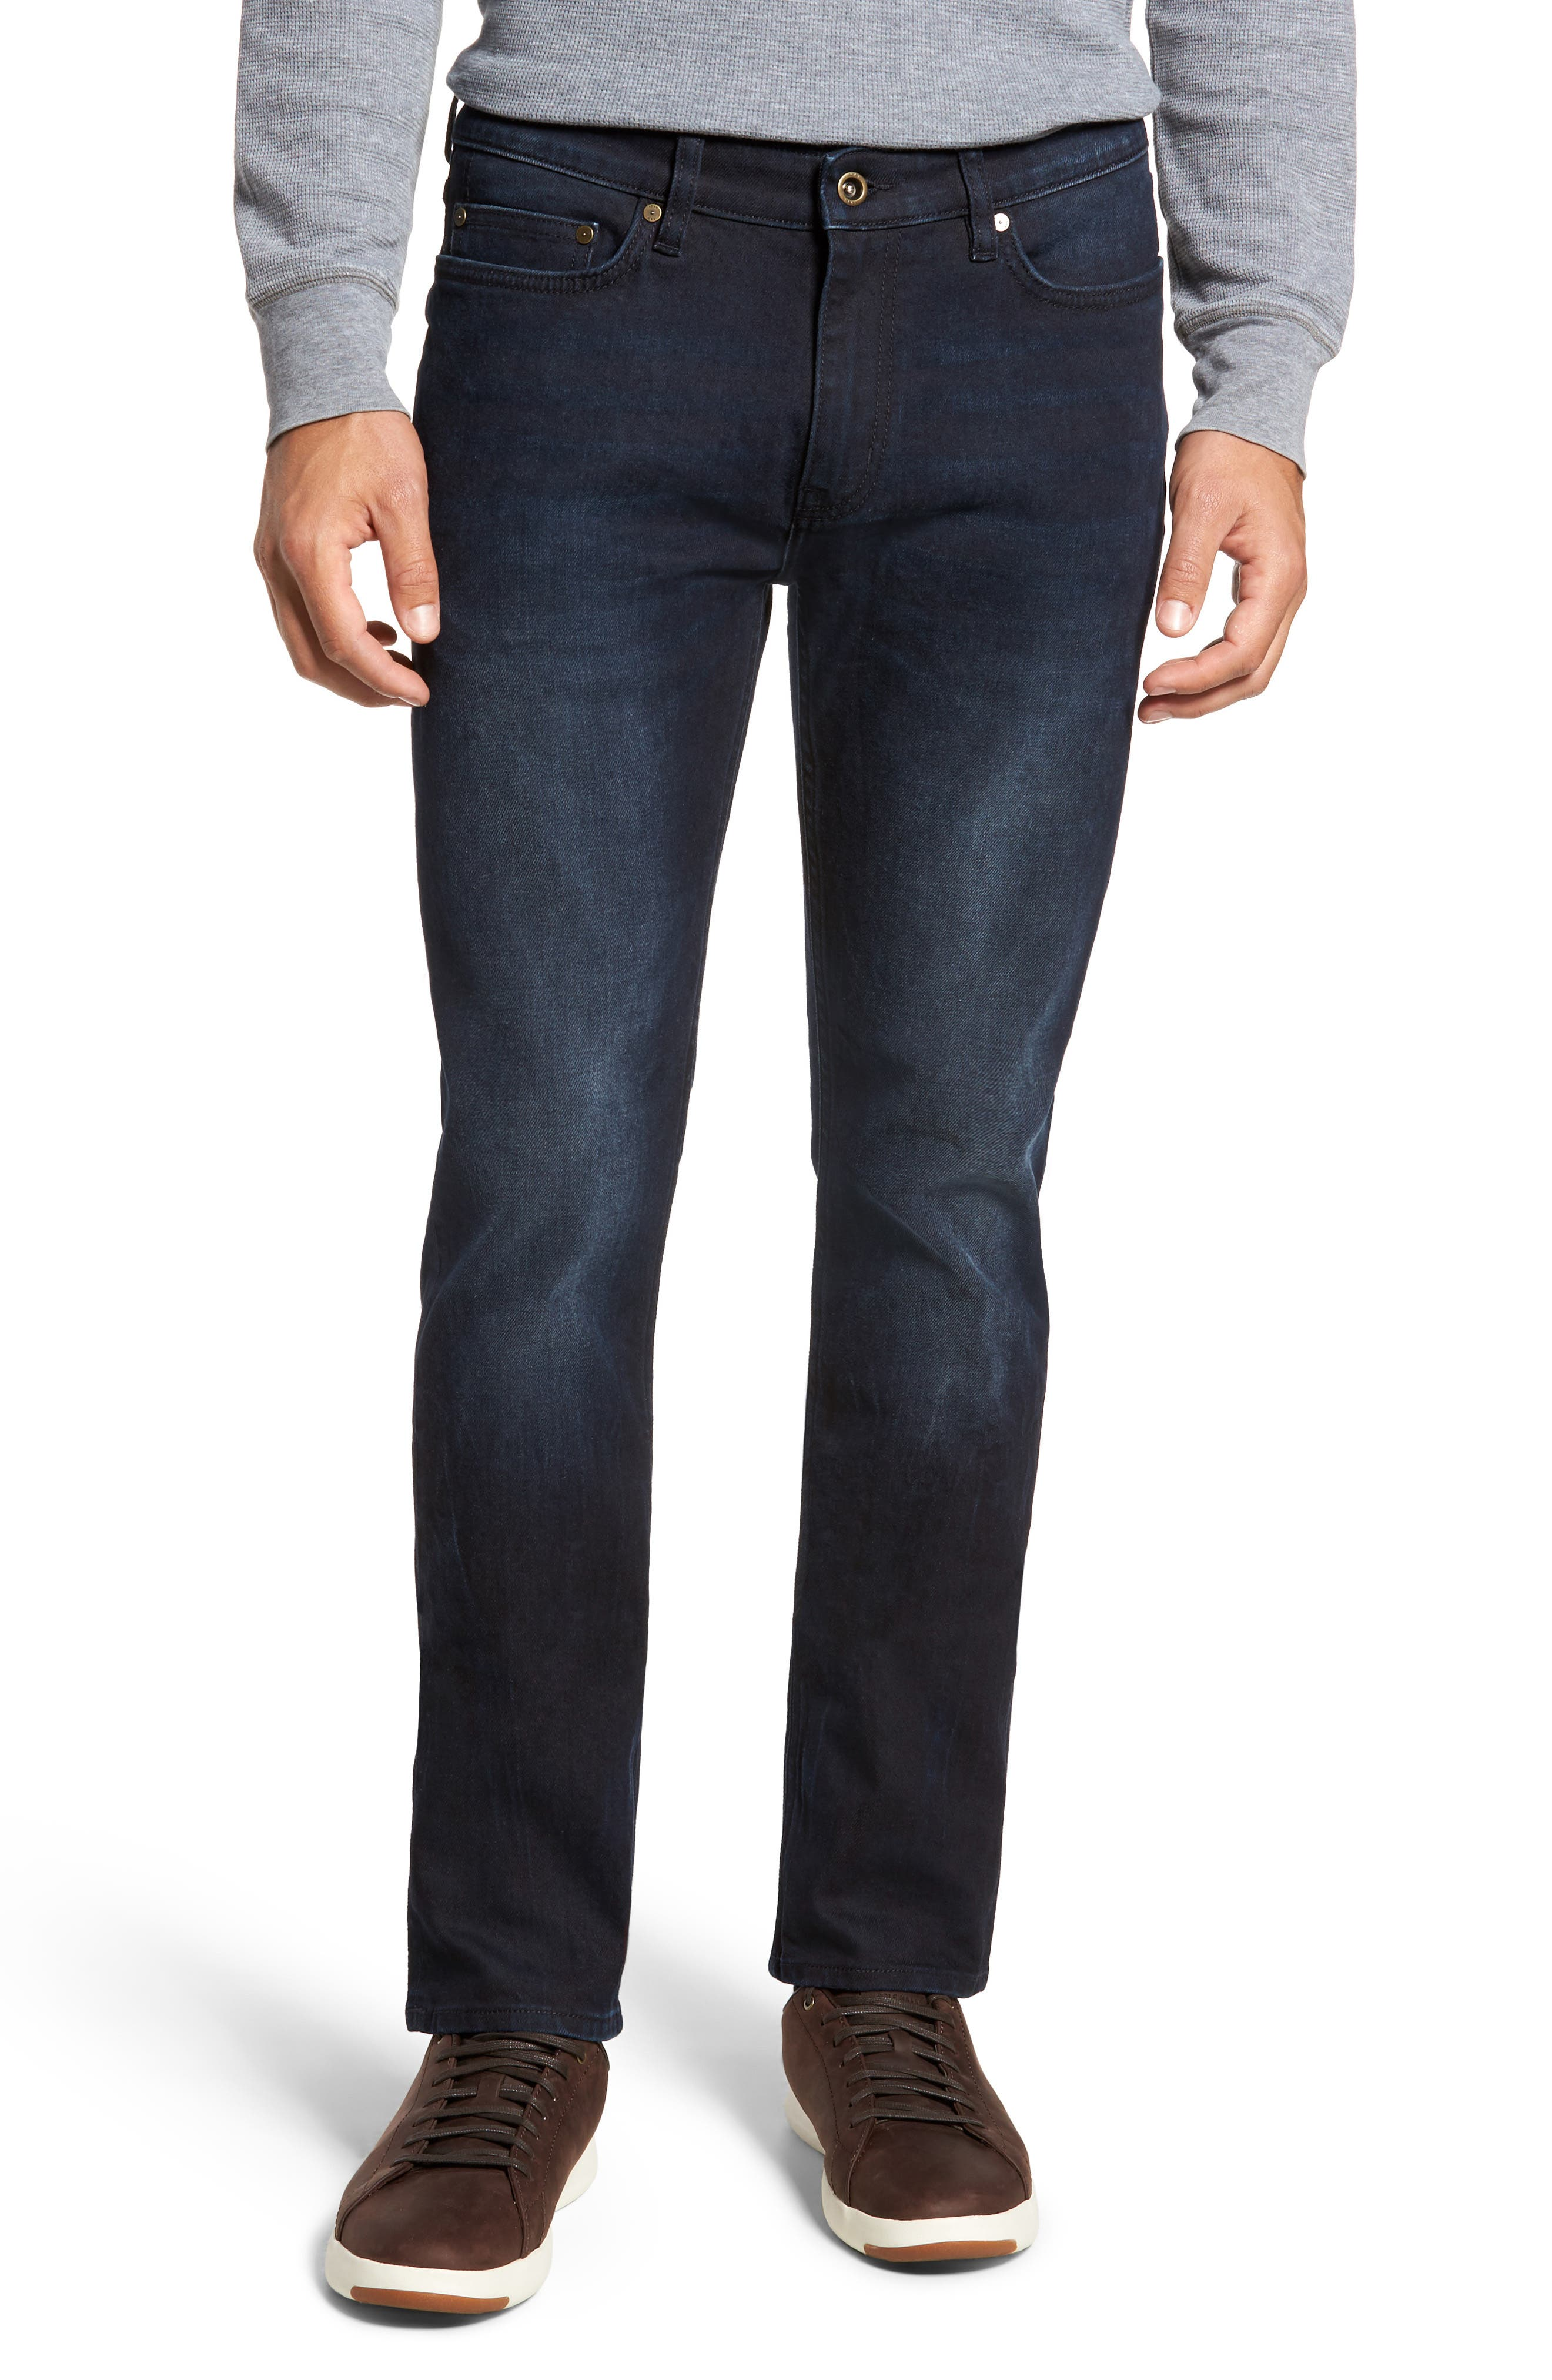 Mapleton Slim Fit Jeans,                         Main,                         color, Denim